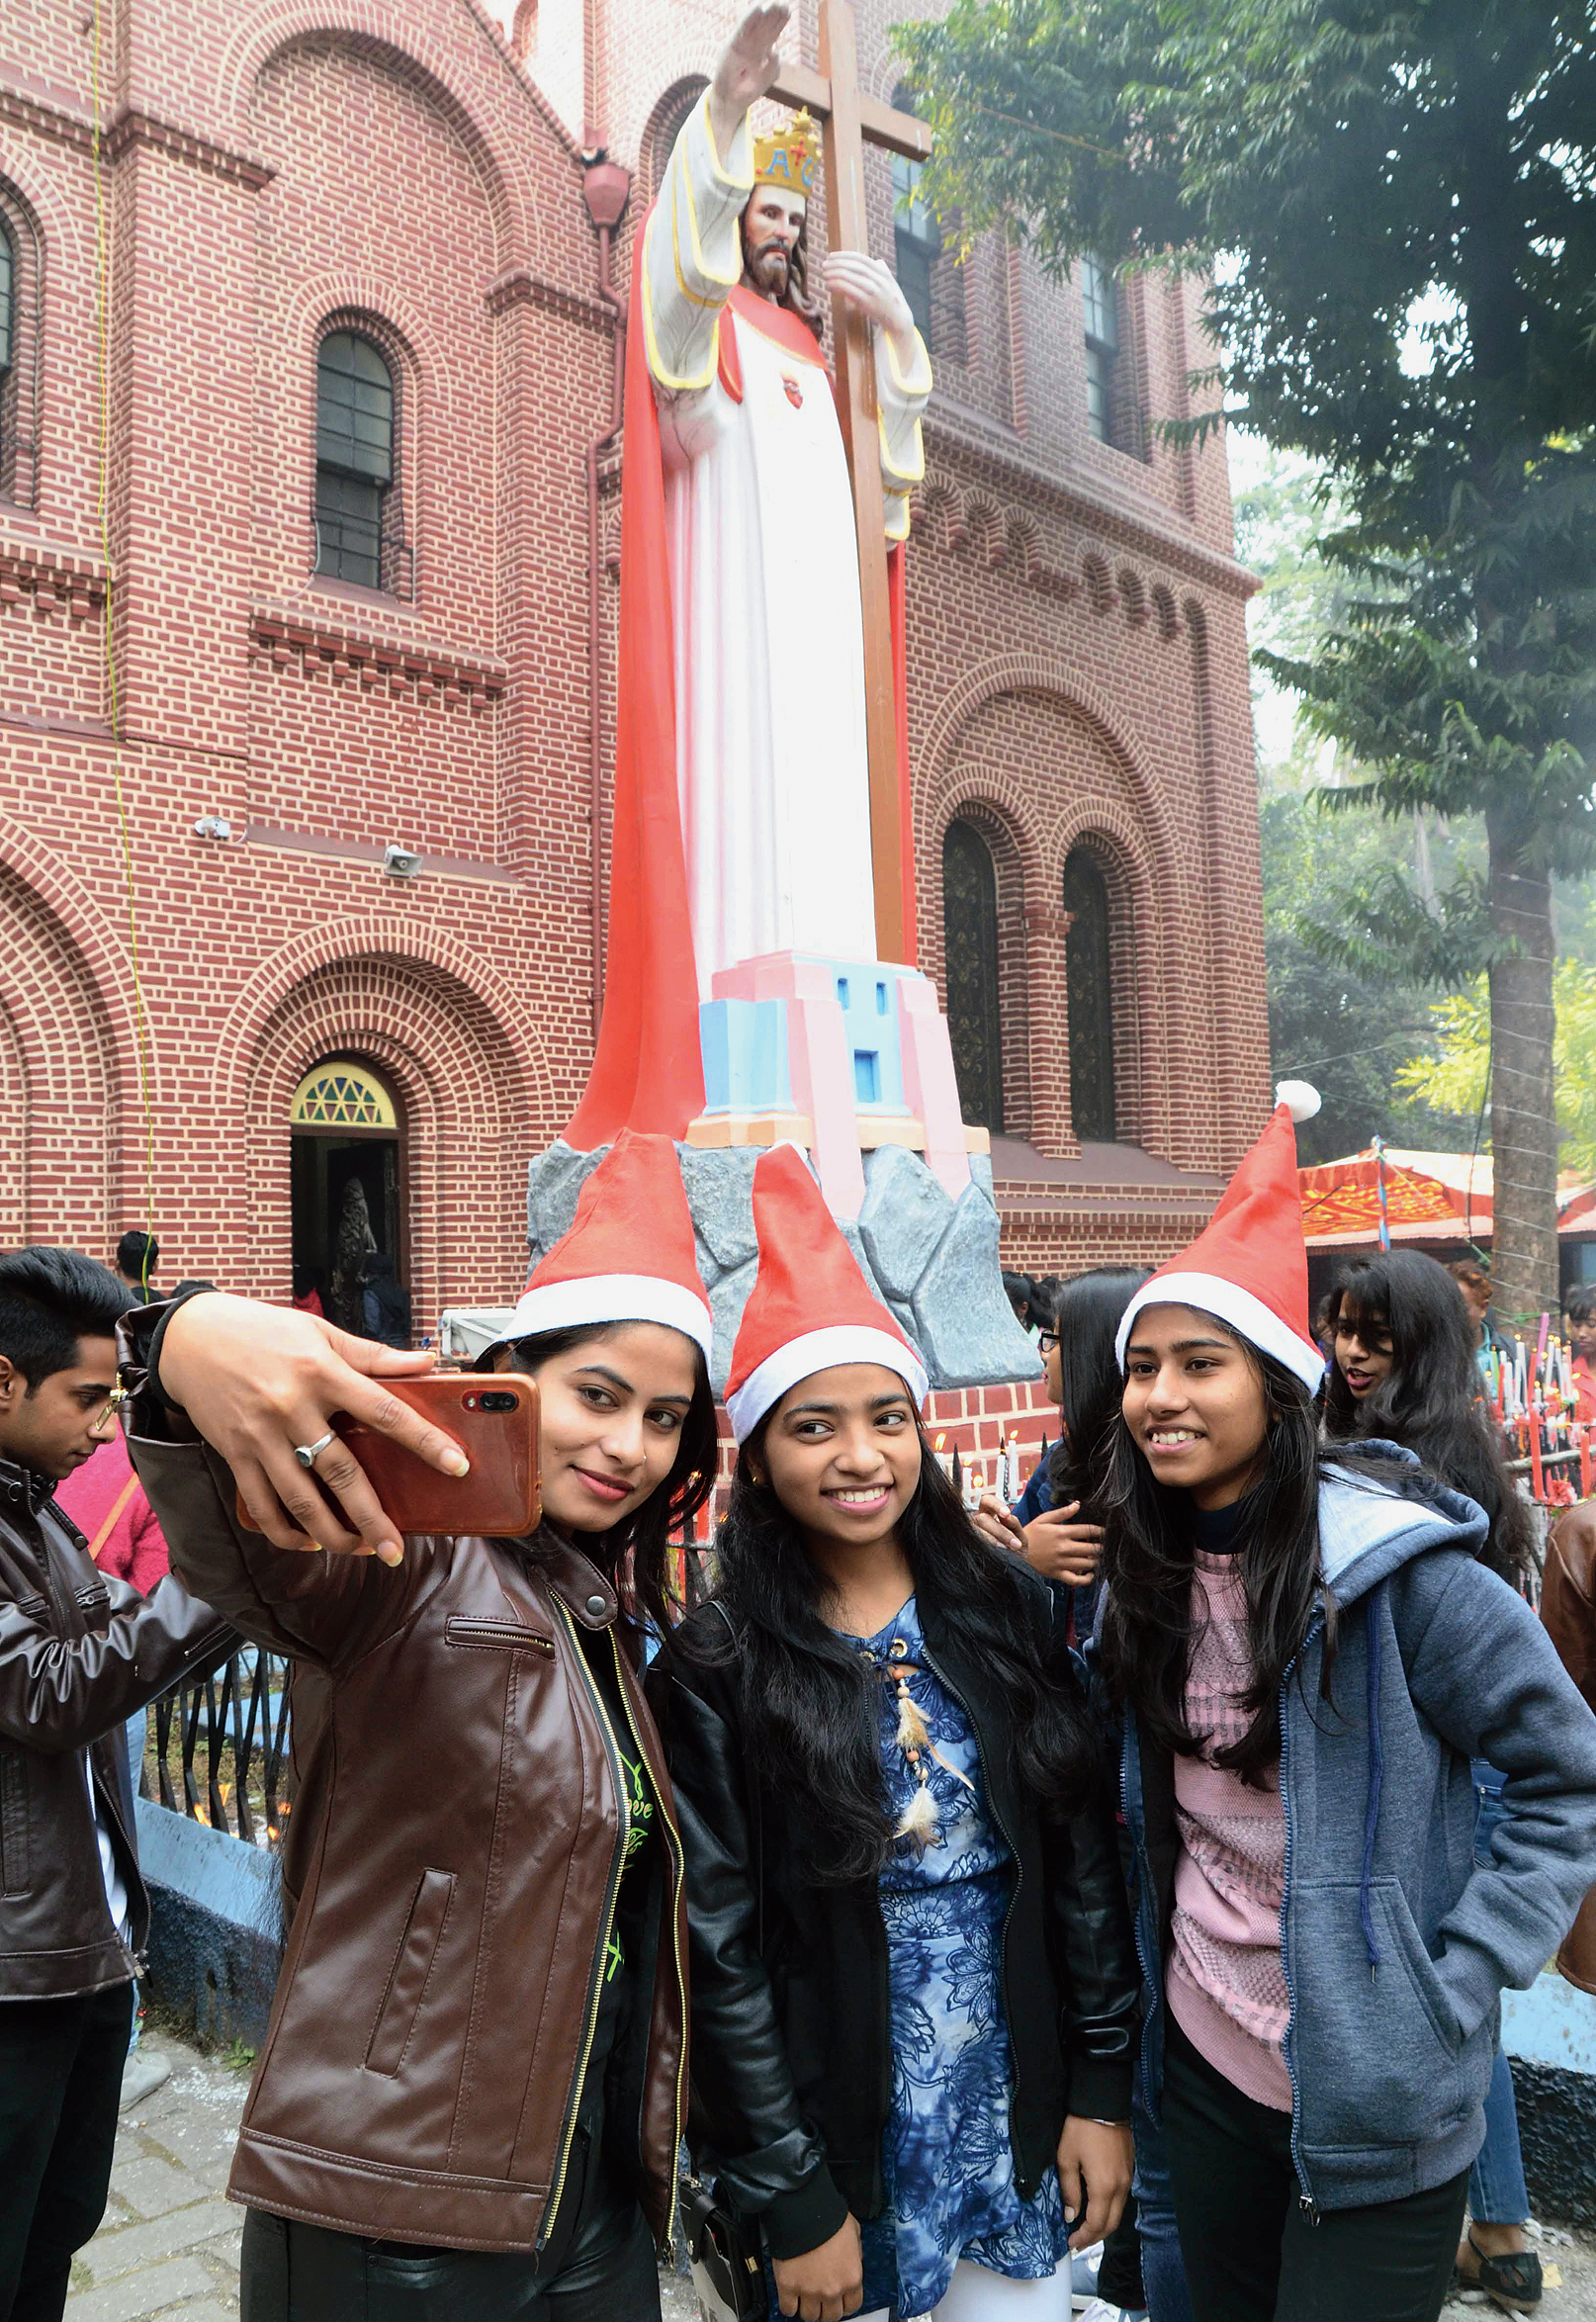 Girls click a groupfie outside St Mary's Cathedral in Ranchi on Wednesday.